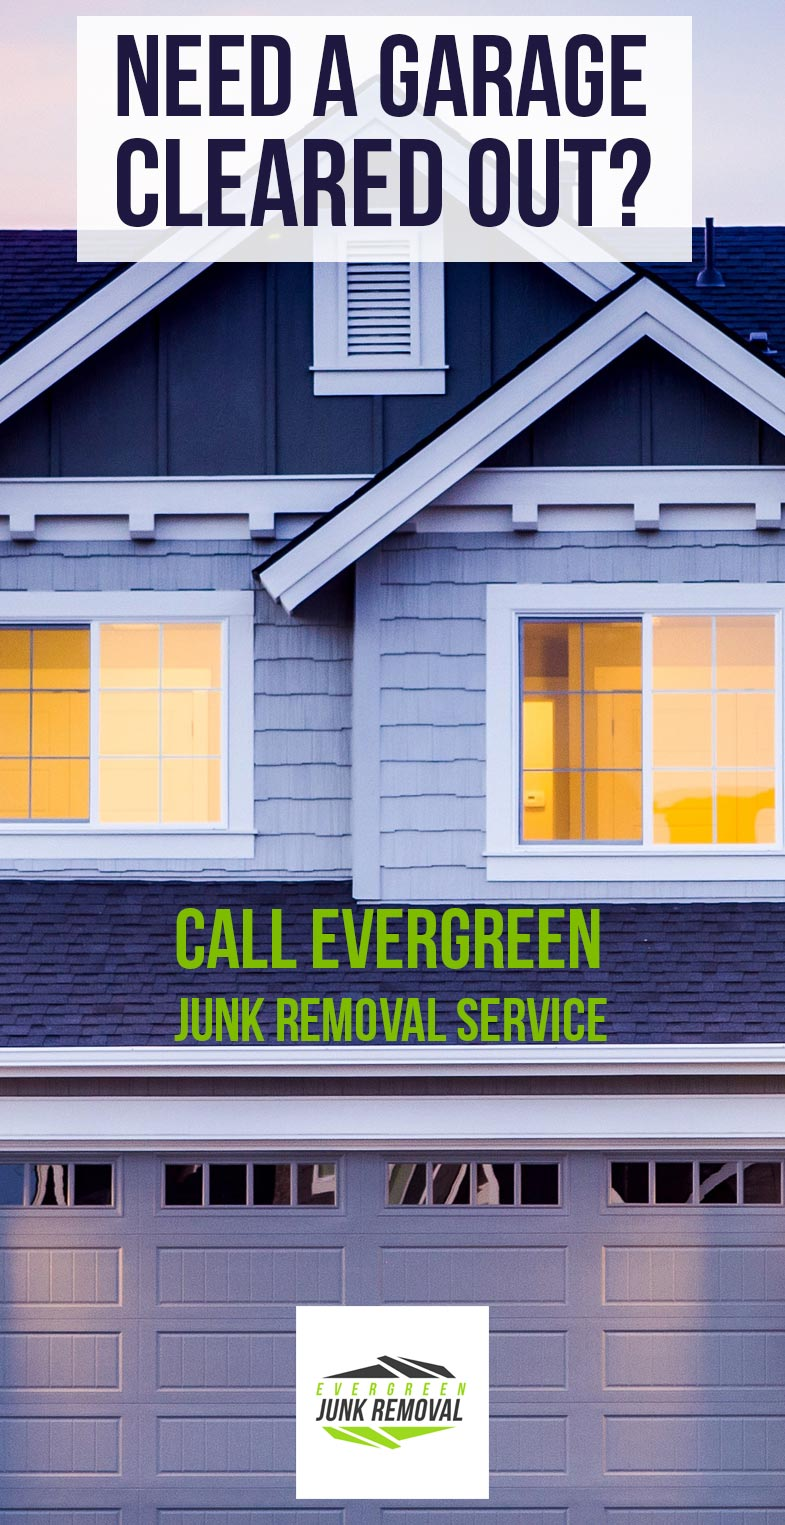 Evergreen Junk Removal Service - Garage Clean Out Service.